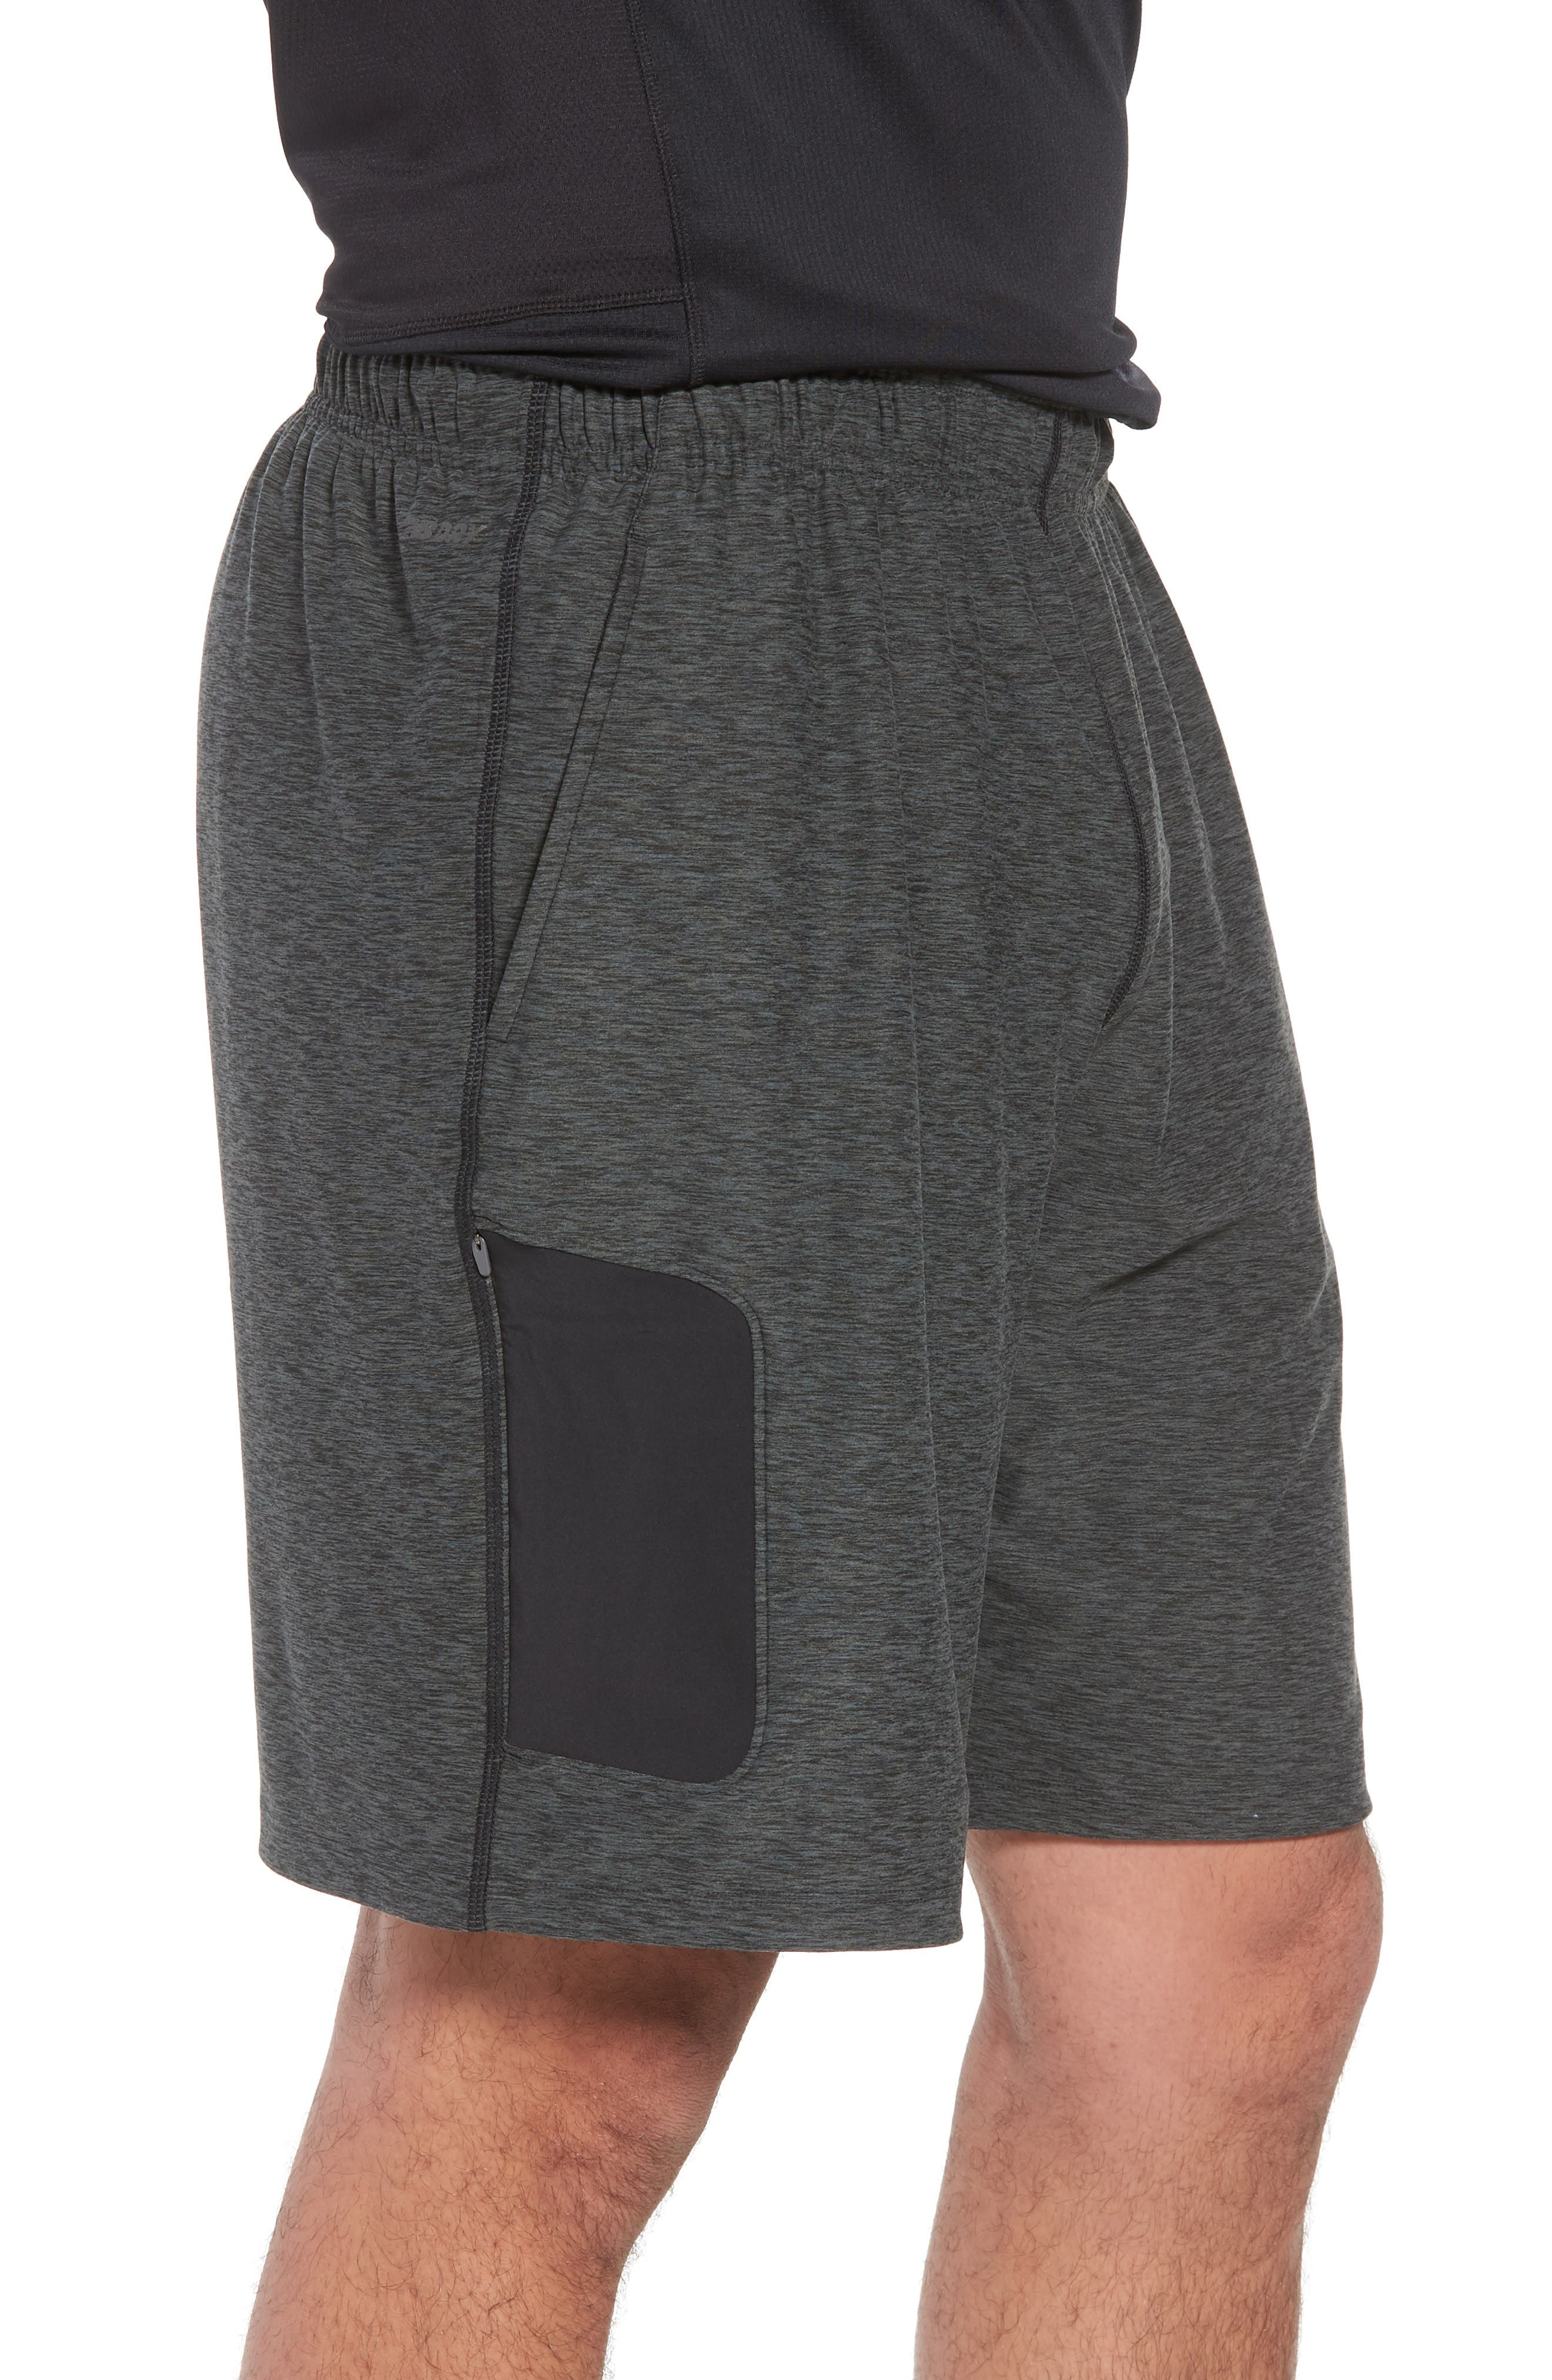 Anticipate Shorts,                             Alternate thumbnail 3, color,                             HEATHER CHARCOAL